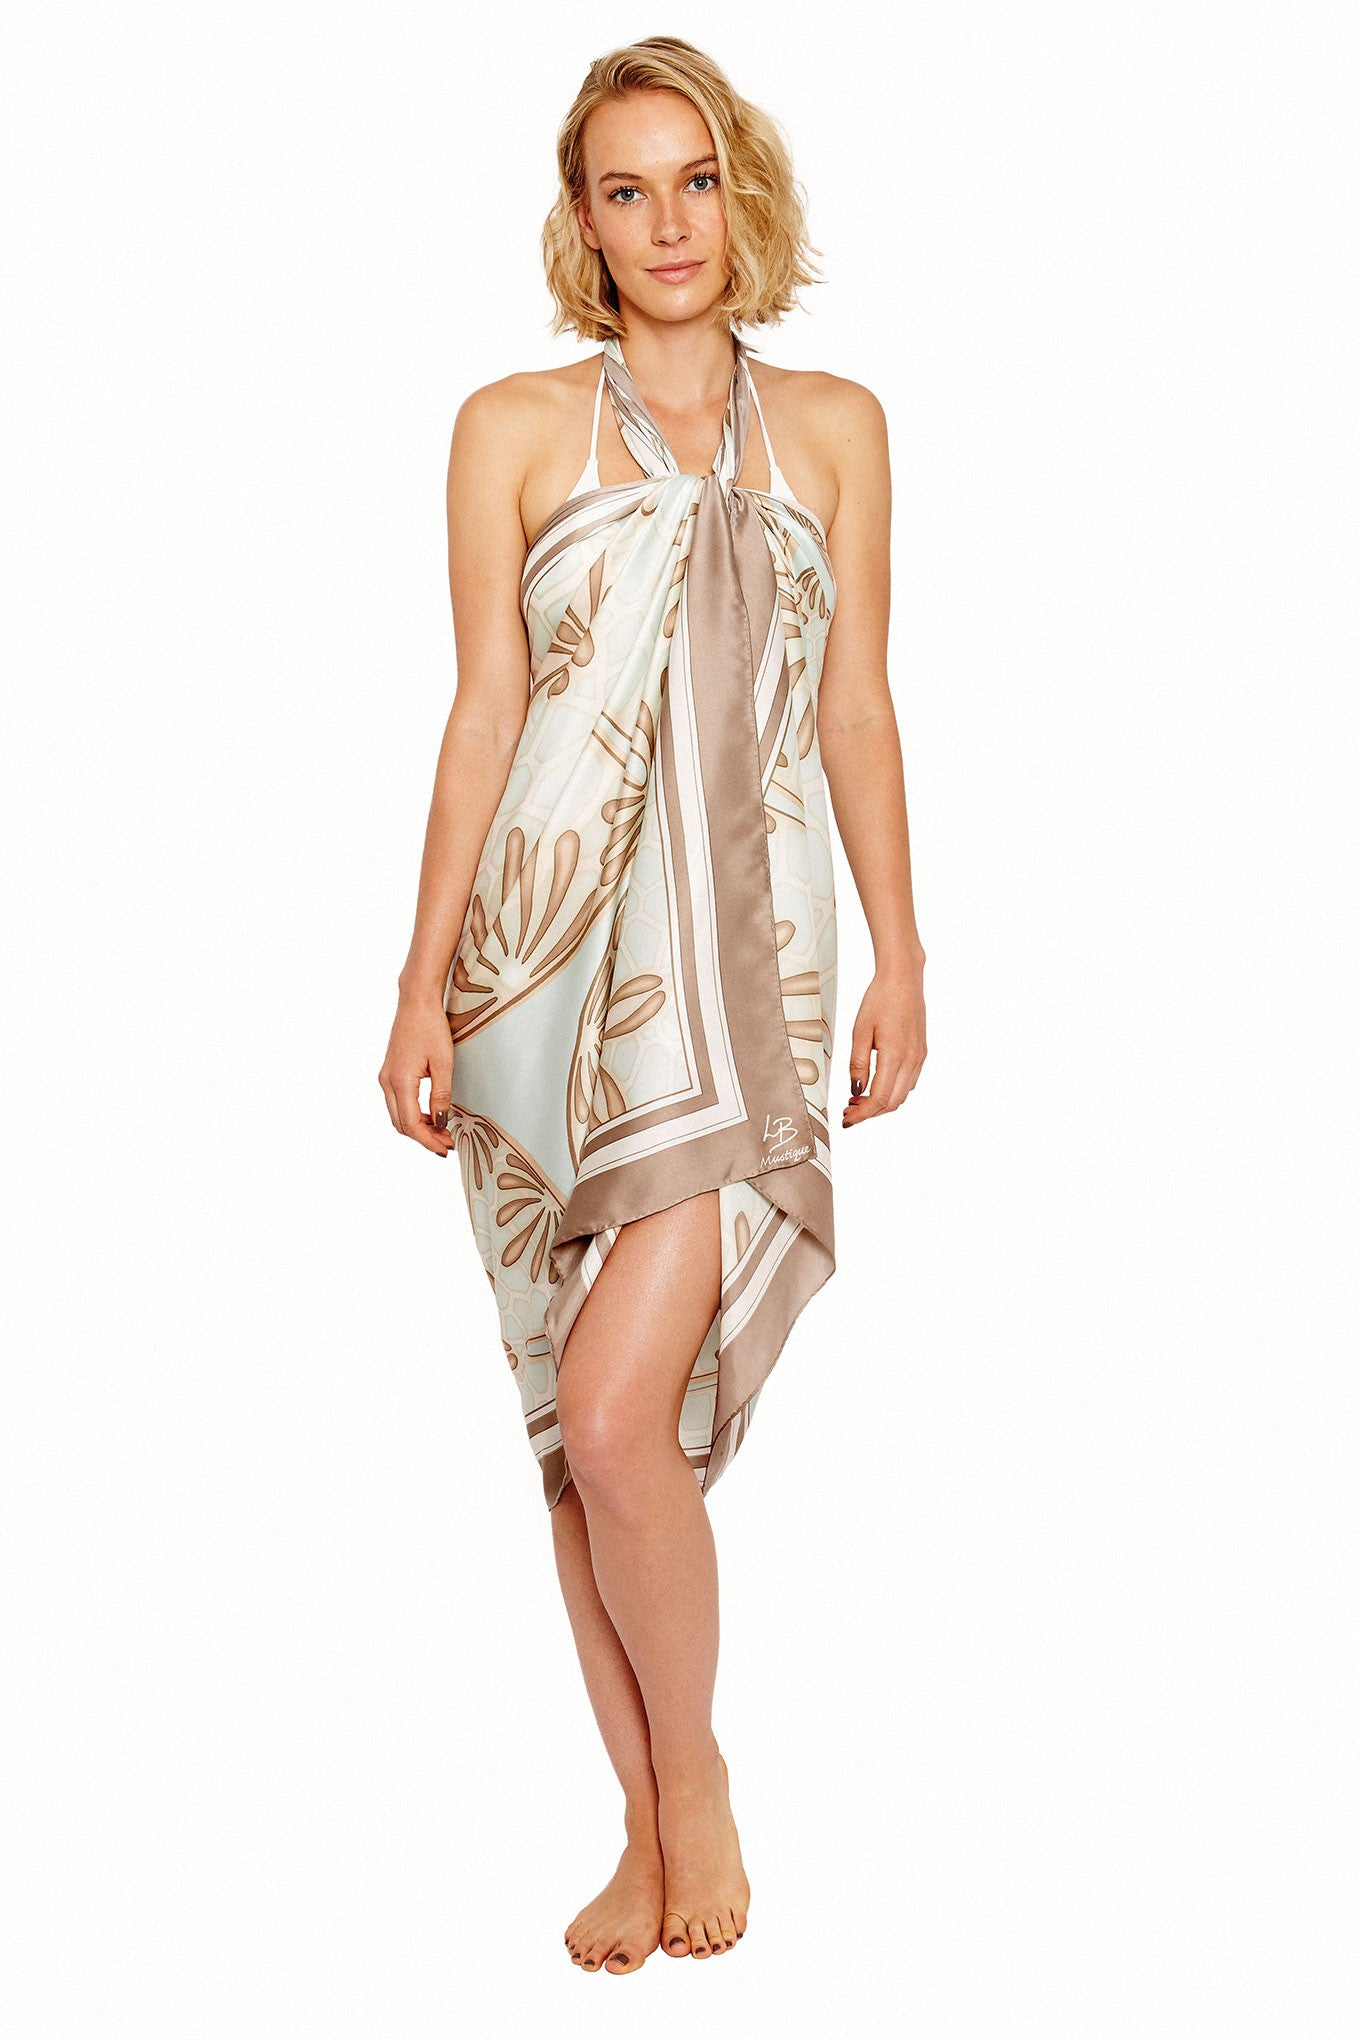 Lotty B Sarong in Silk Charmeuse (Sand Dollar Taupe) Tied at Neck